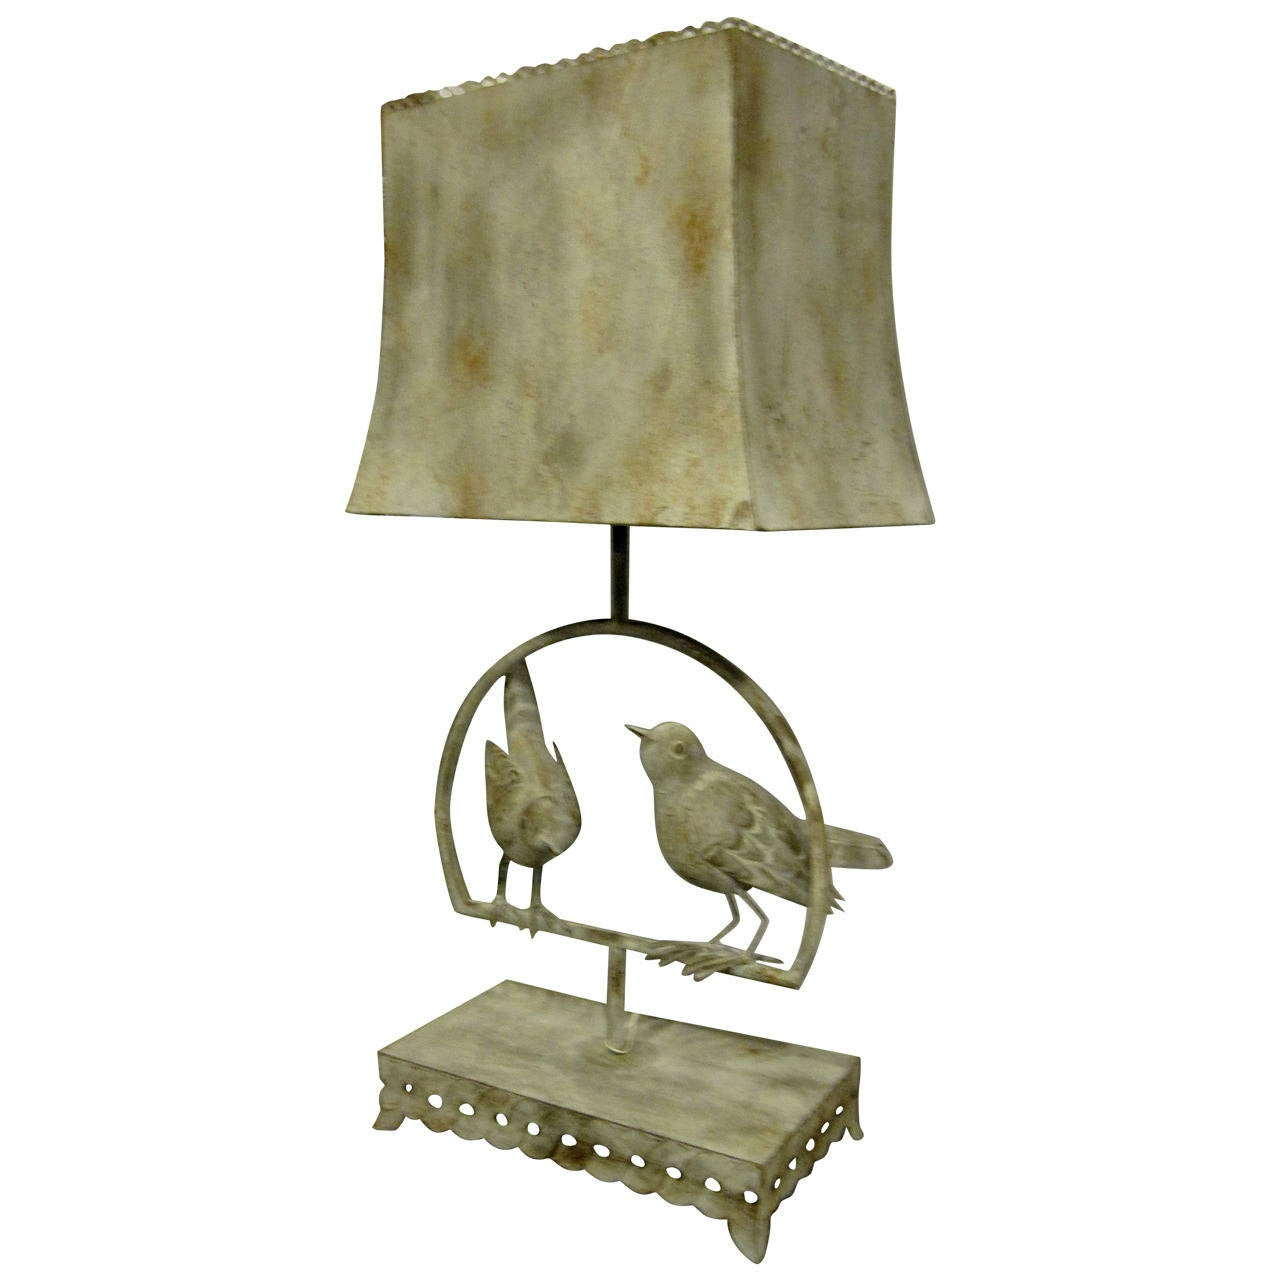 Charming Tole Bird Lamp With Tole Shade In Verdi Gris Finish At 1stdibs